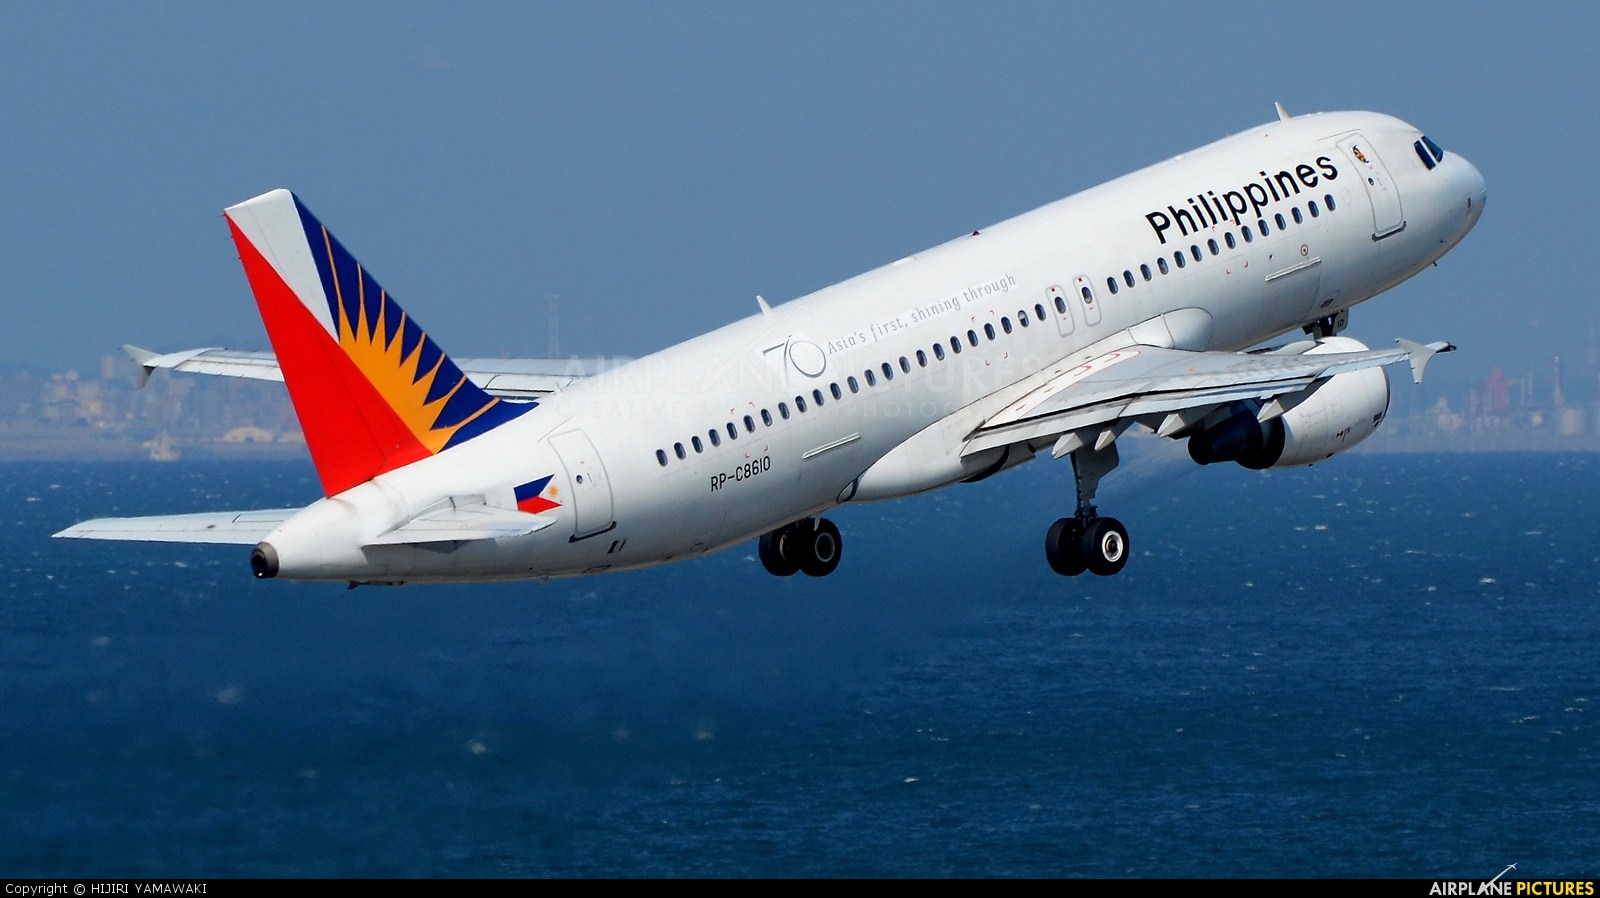 Download this Philippine Airlines Truly Shining Through picture